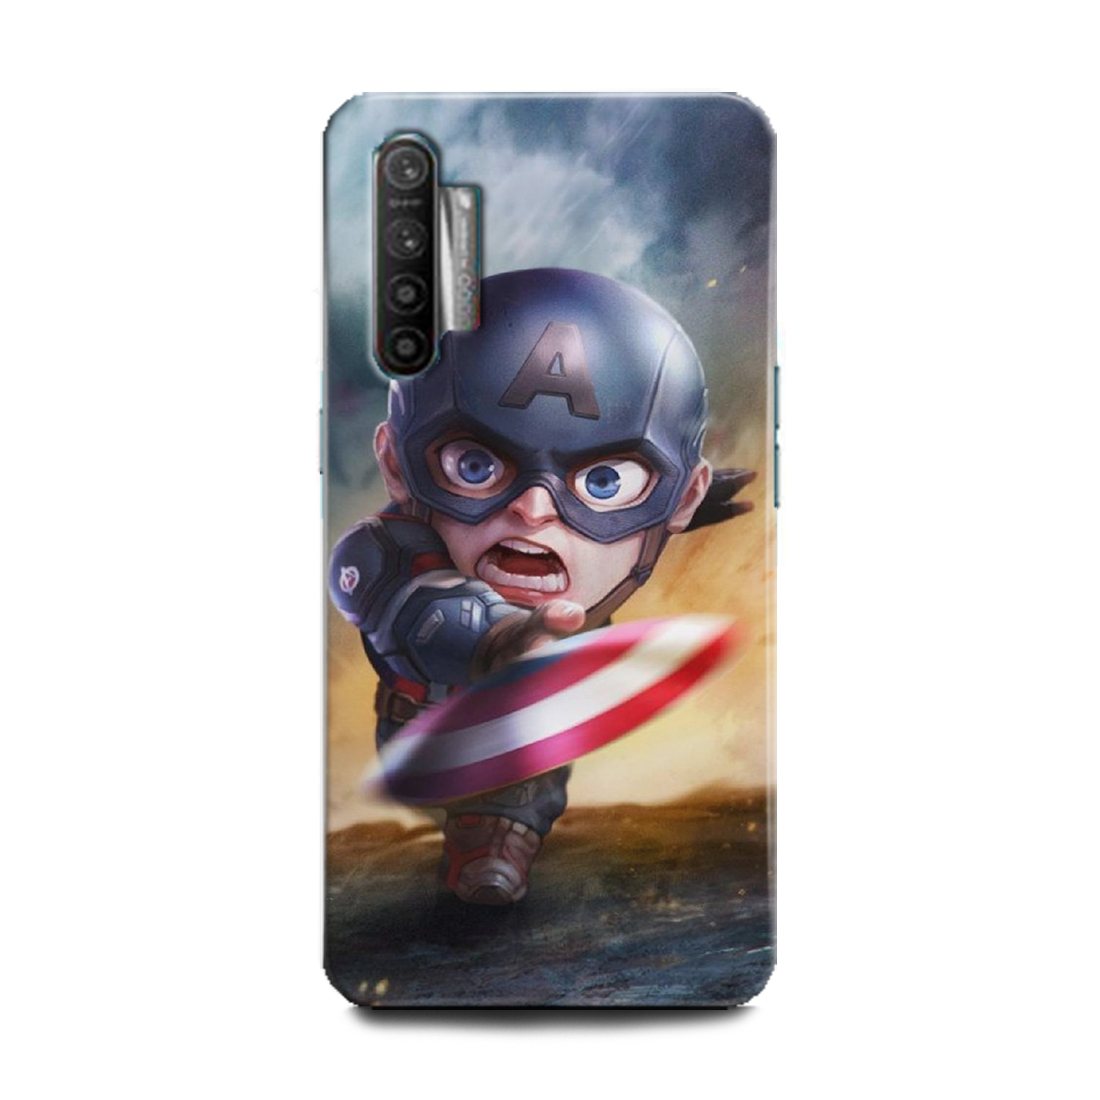 INDICRAFT Mobile Back Cover For Realme X2 Hard Case (Captain America, The First Avenger, Shield, Comics, Marvel, RMX1992) (AB-RealmeX2-0030)